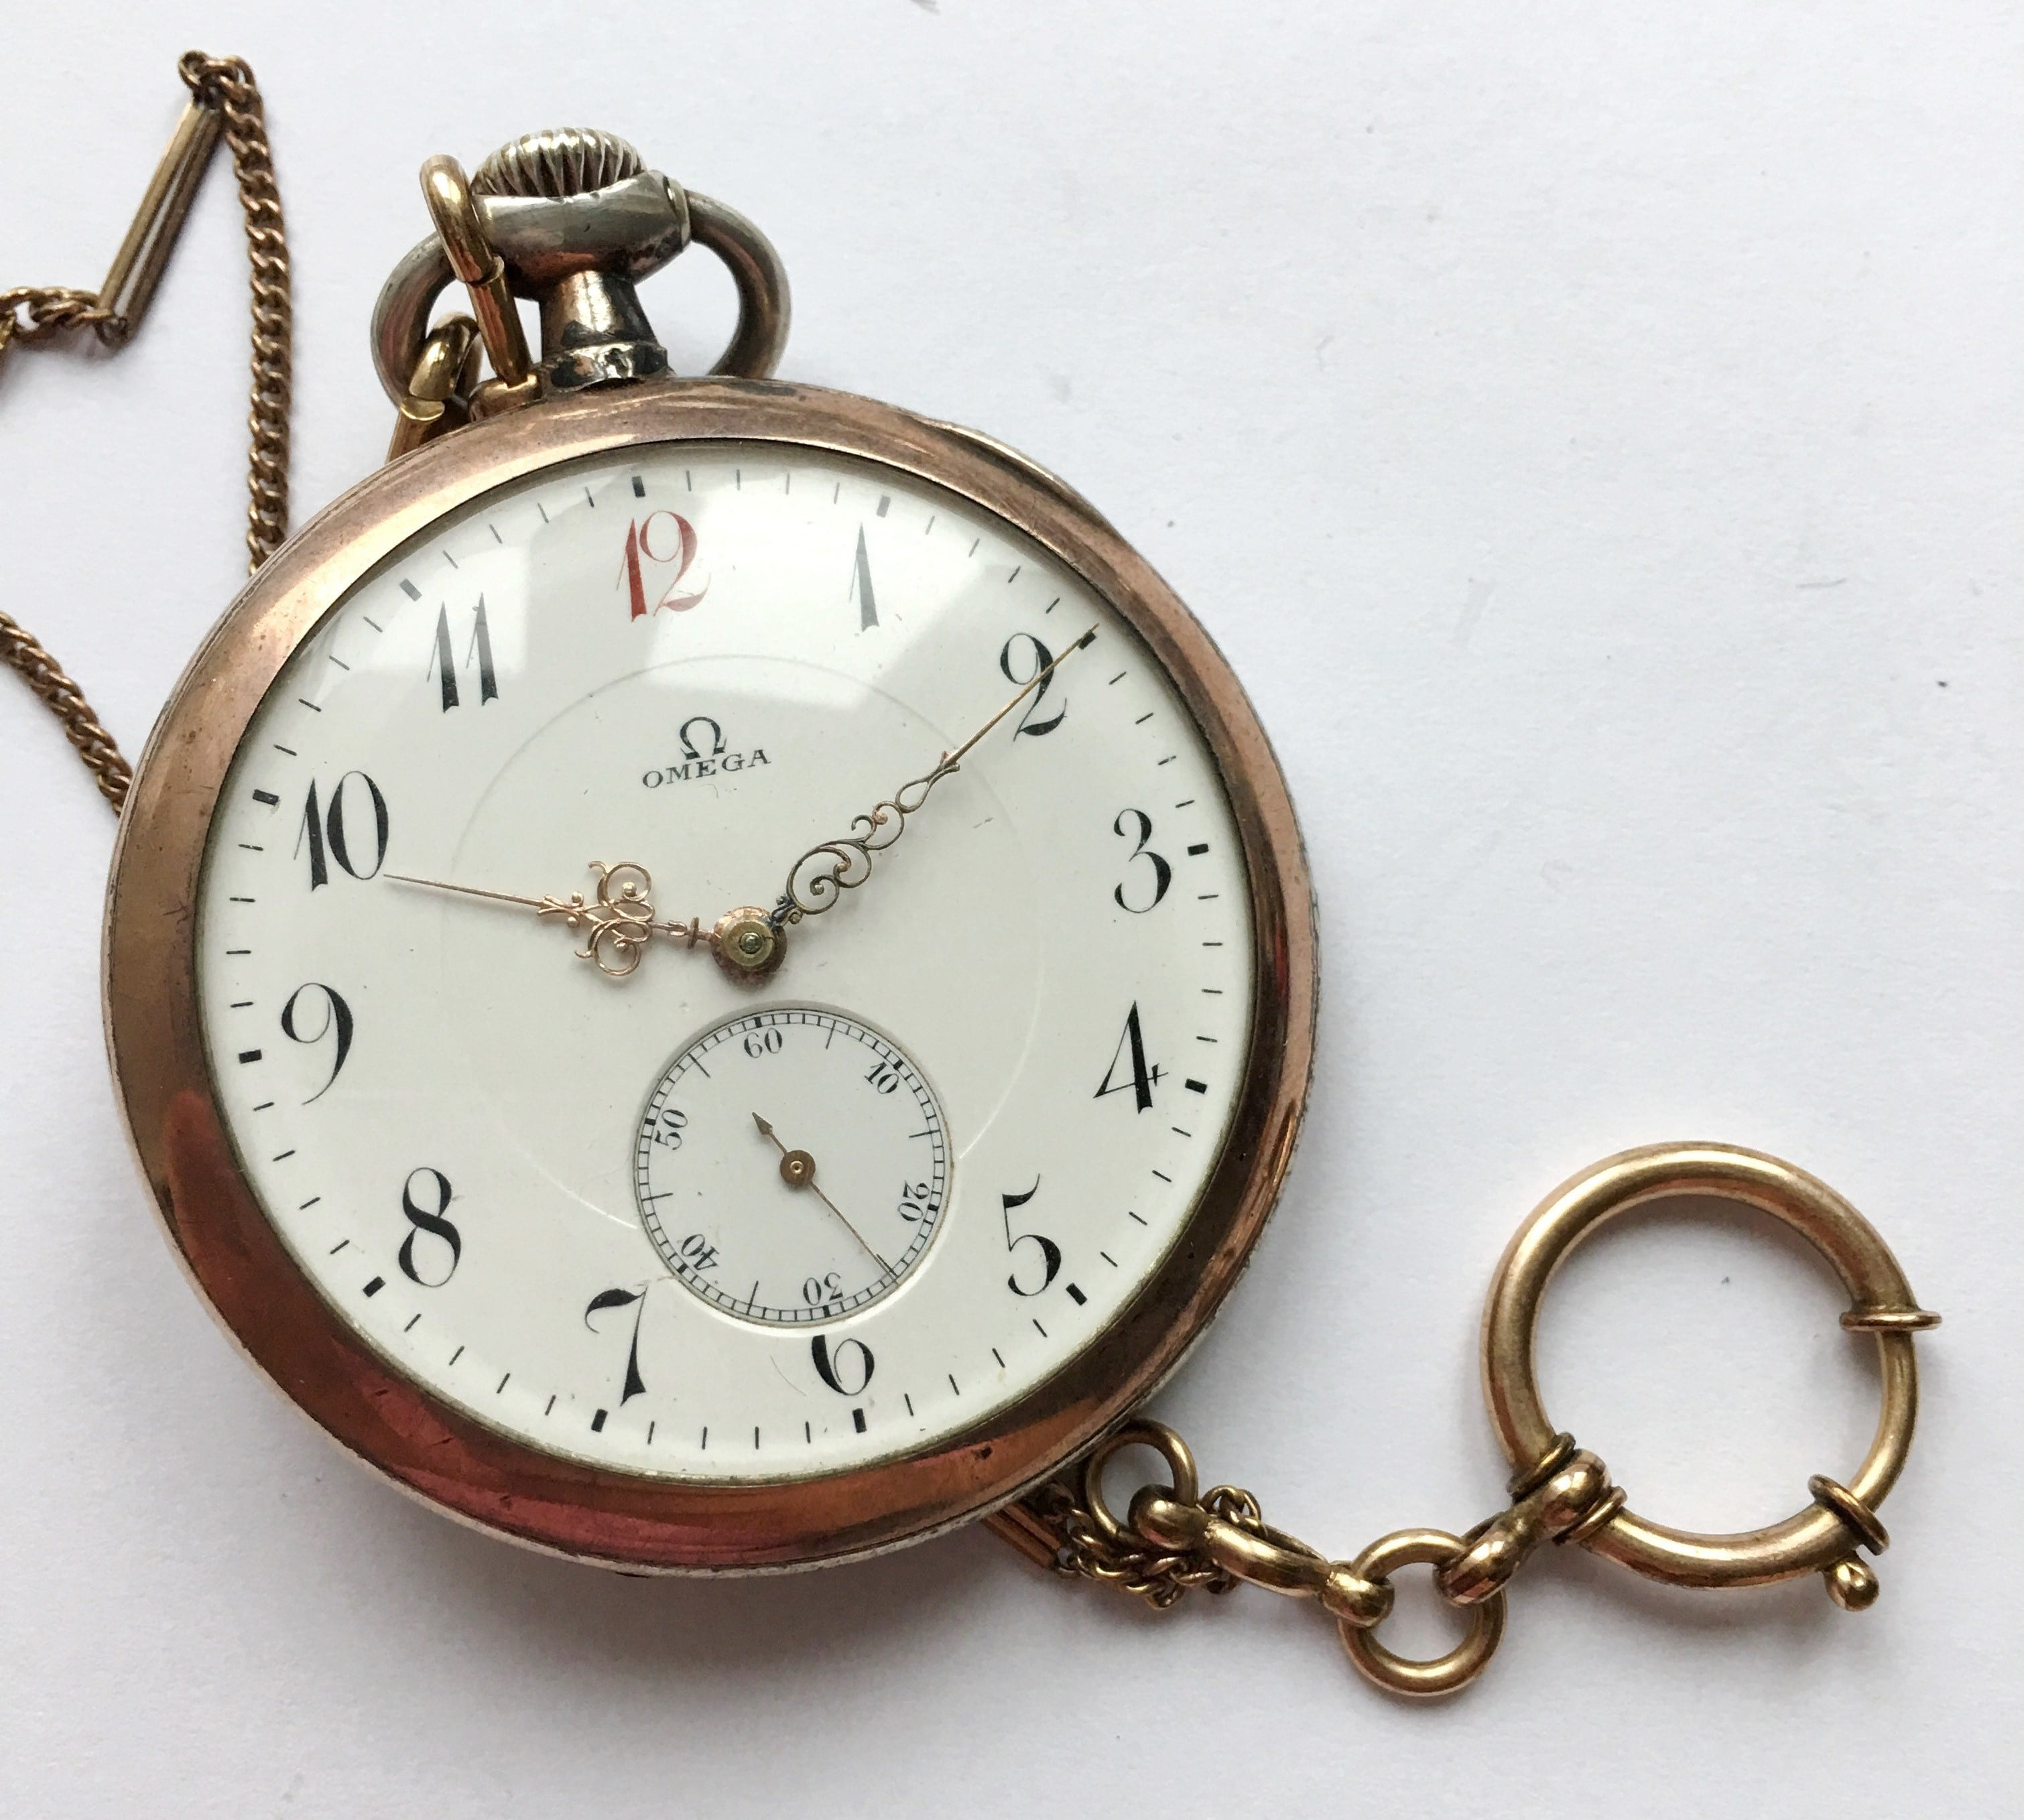 rose vintage tasch portfolio gold silver pocket watch watches shop omega plated